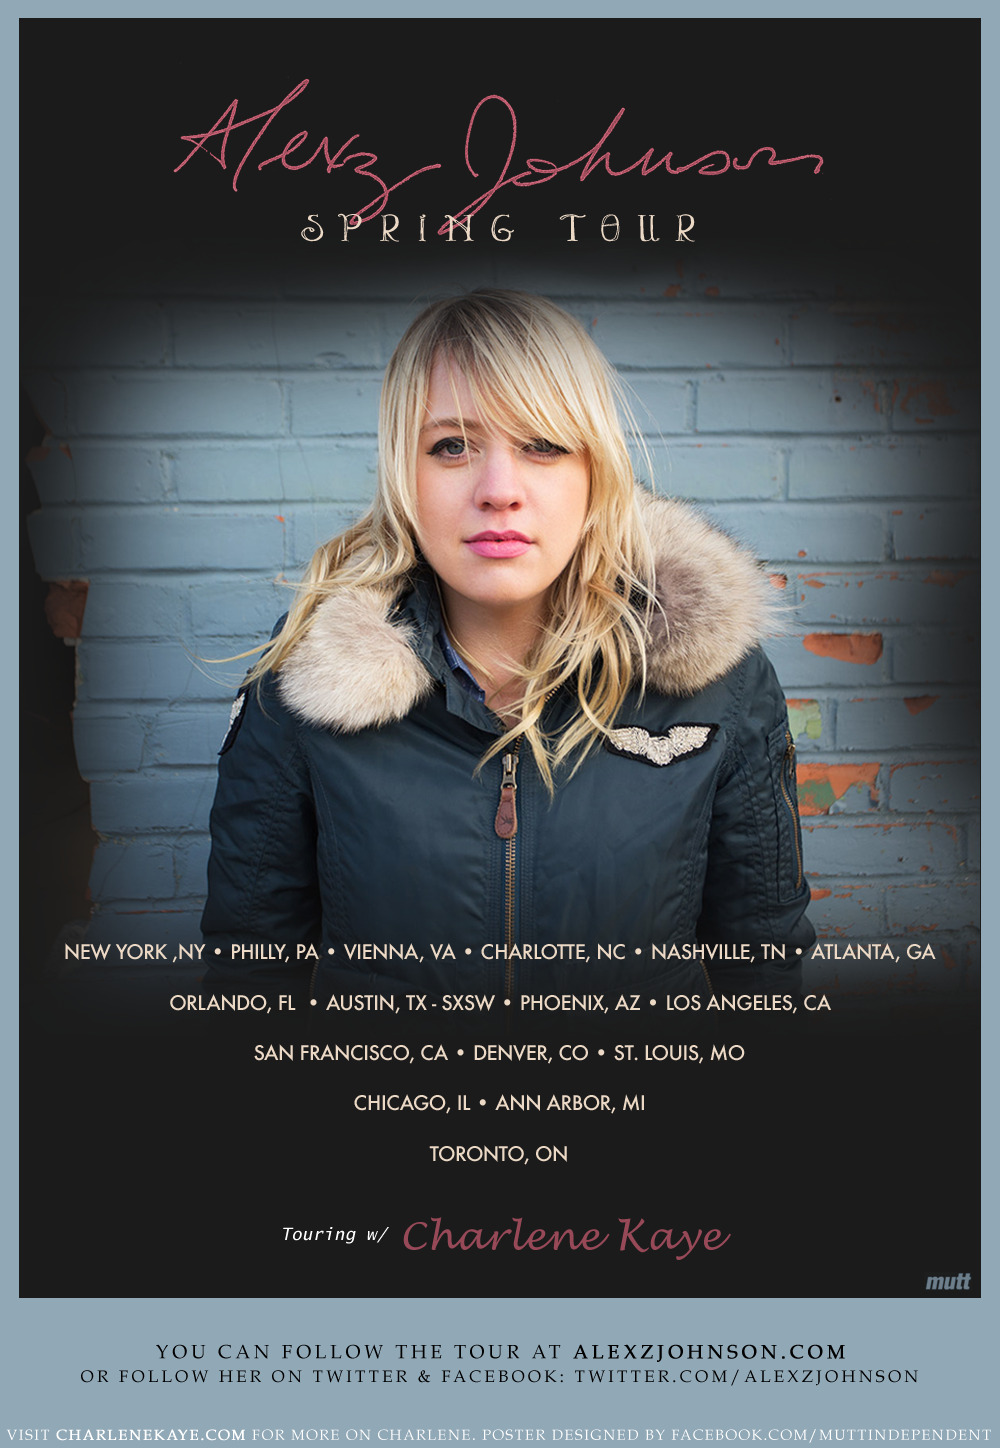 SPRING TOUR ANNOUNCEMENT: Alexz Johnson will tour US/Canada this spring with Charlene Kaye - featuring Misty Boyce & Jay Stolar